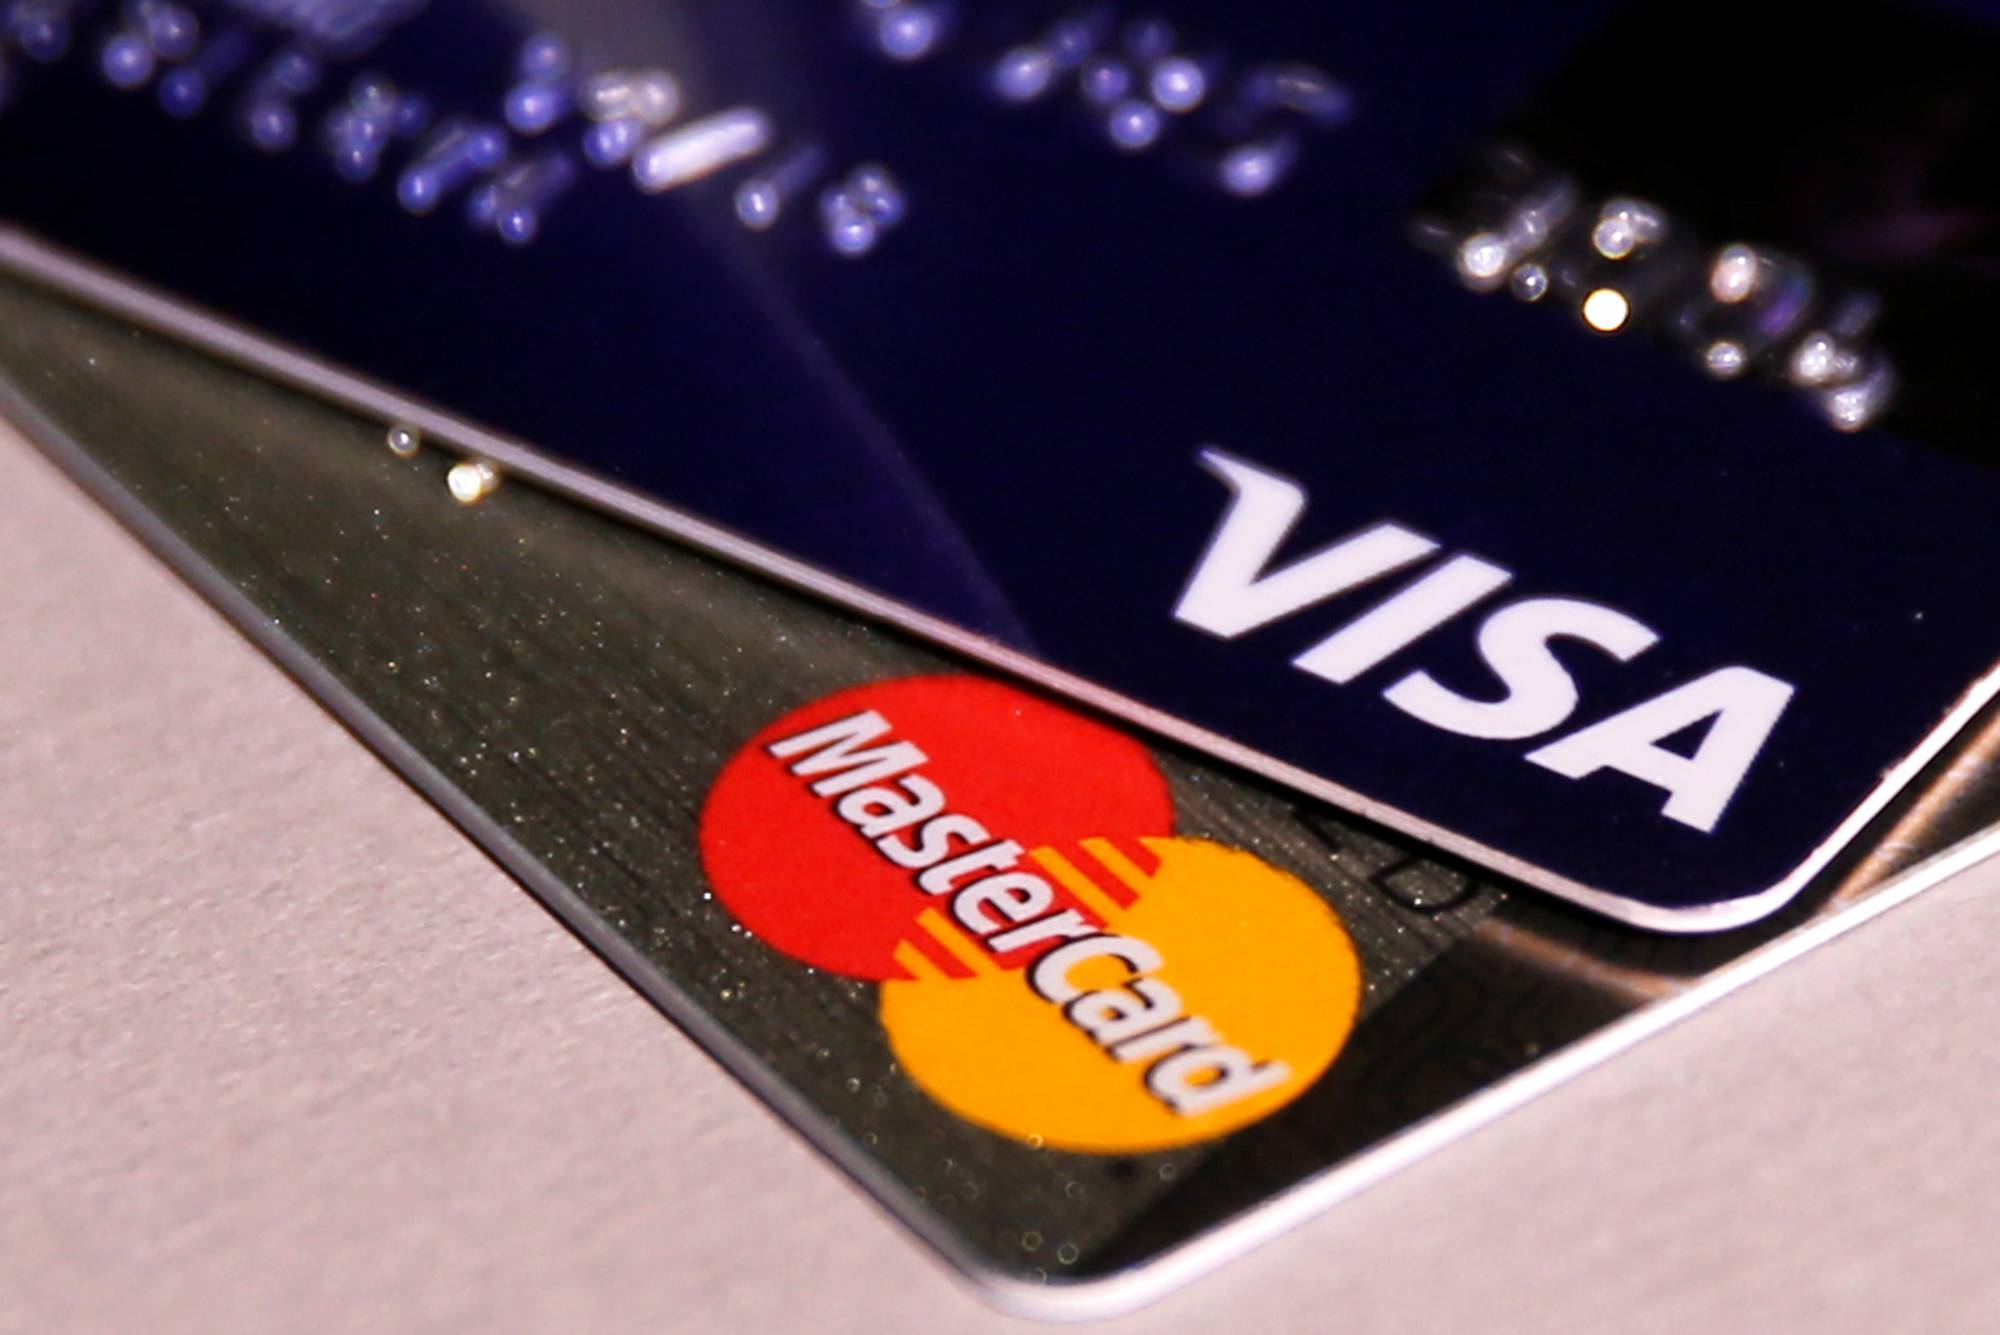 Credit Card Chips Have Failed to Halt Fraud, Survey Shows | Fortune